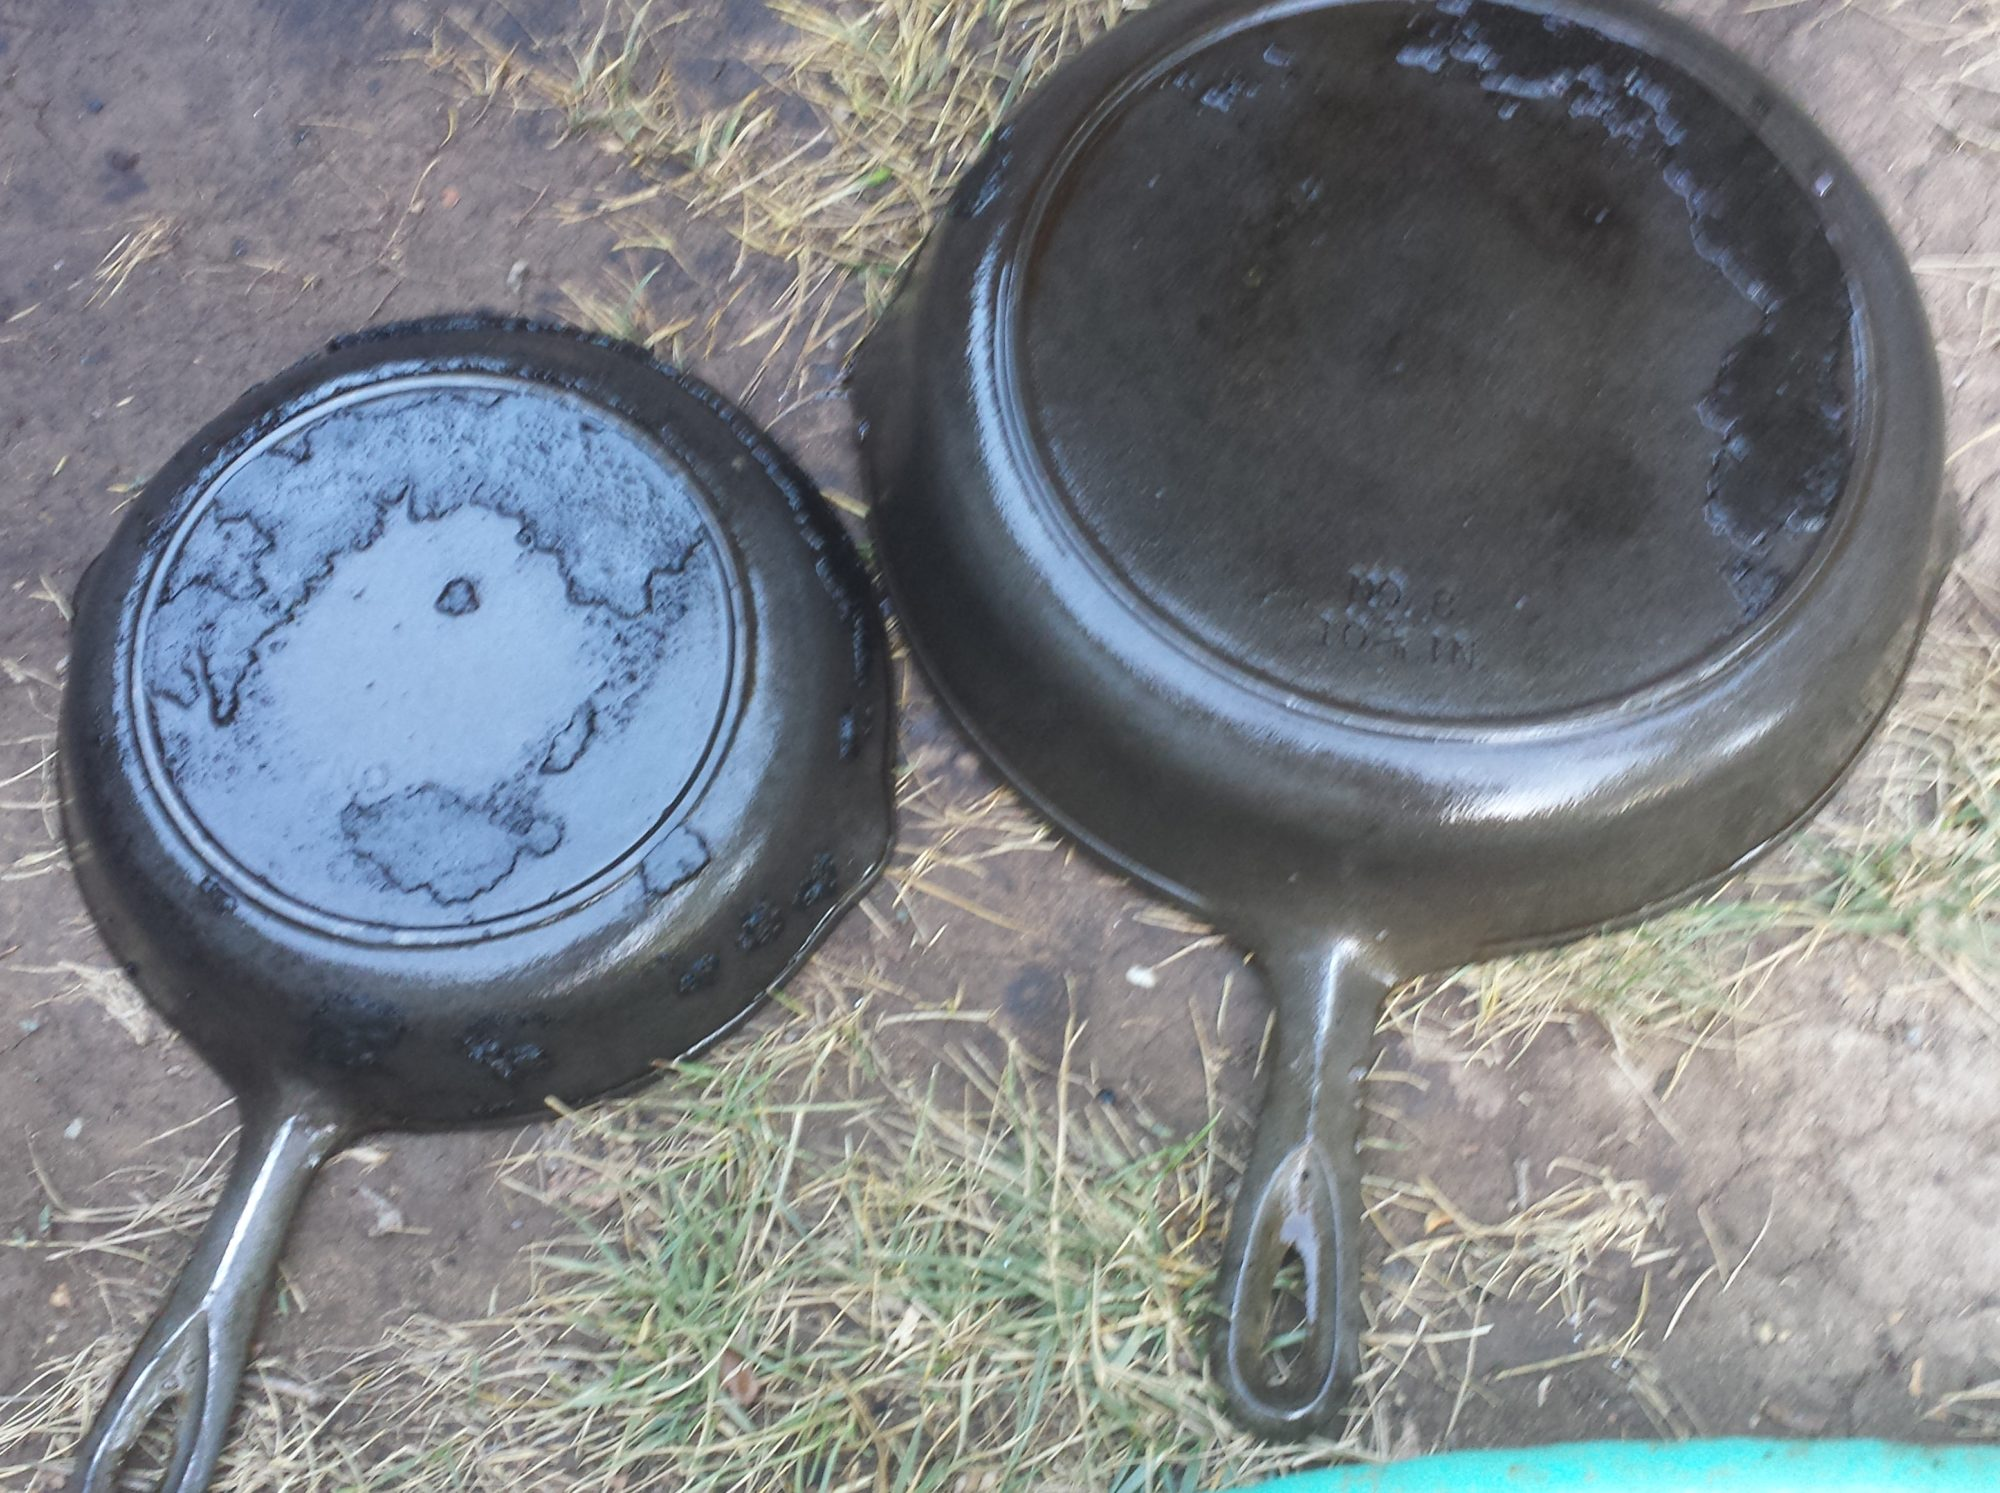 Cast Iron Cooking and Restoration